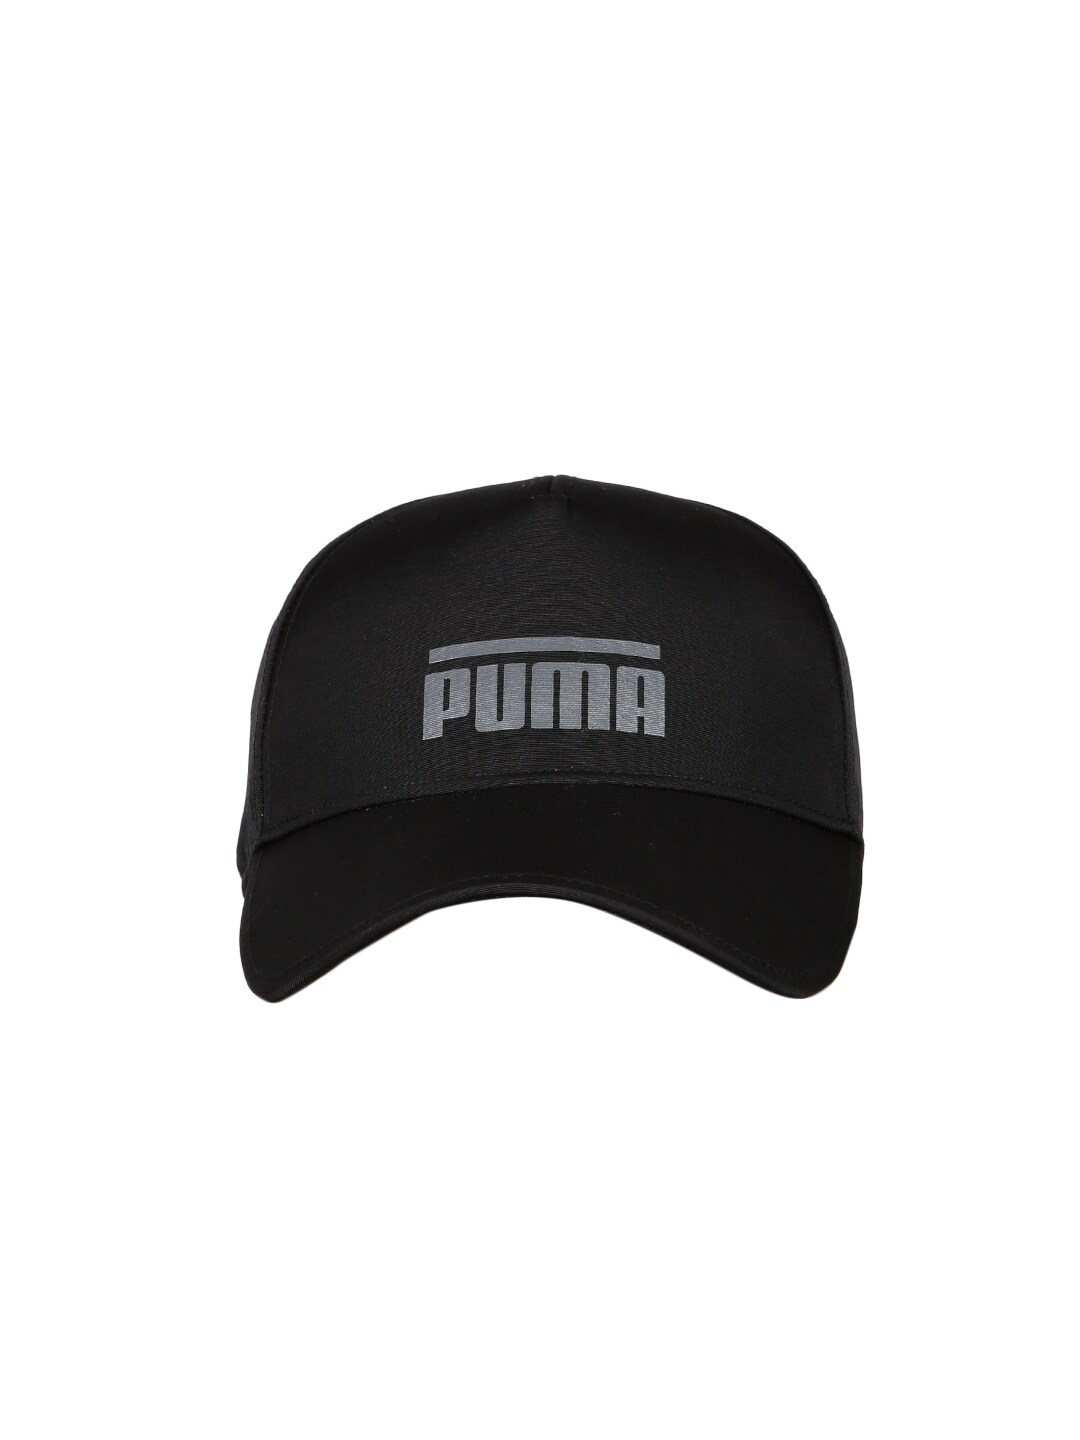 38a5257250b Puma Original Caps - Buy Puma Original Caps online in India